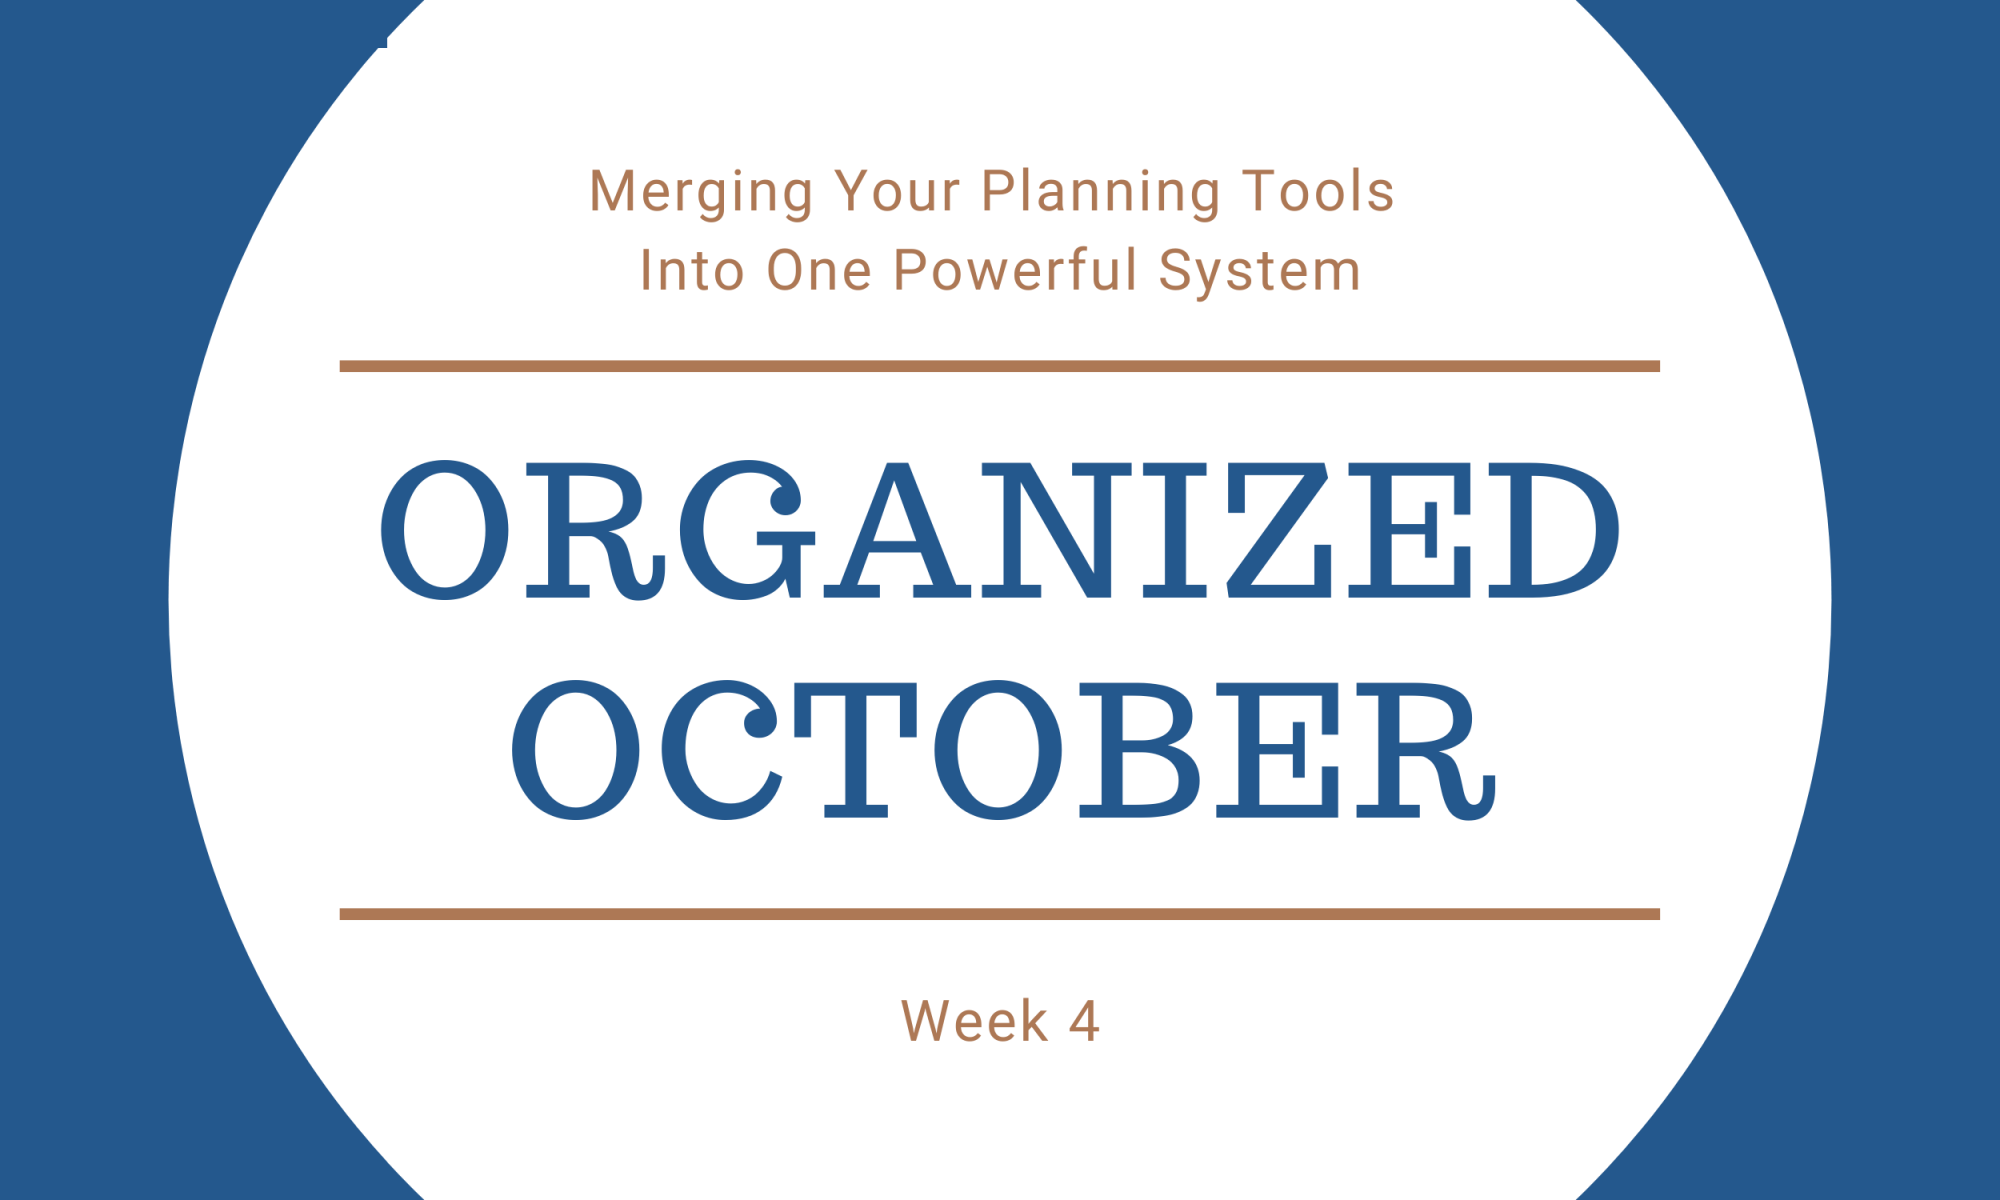 Organized October Week 4